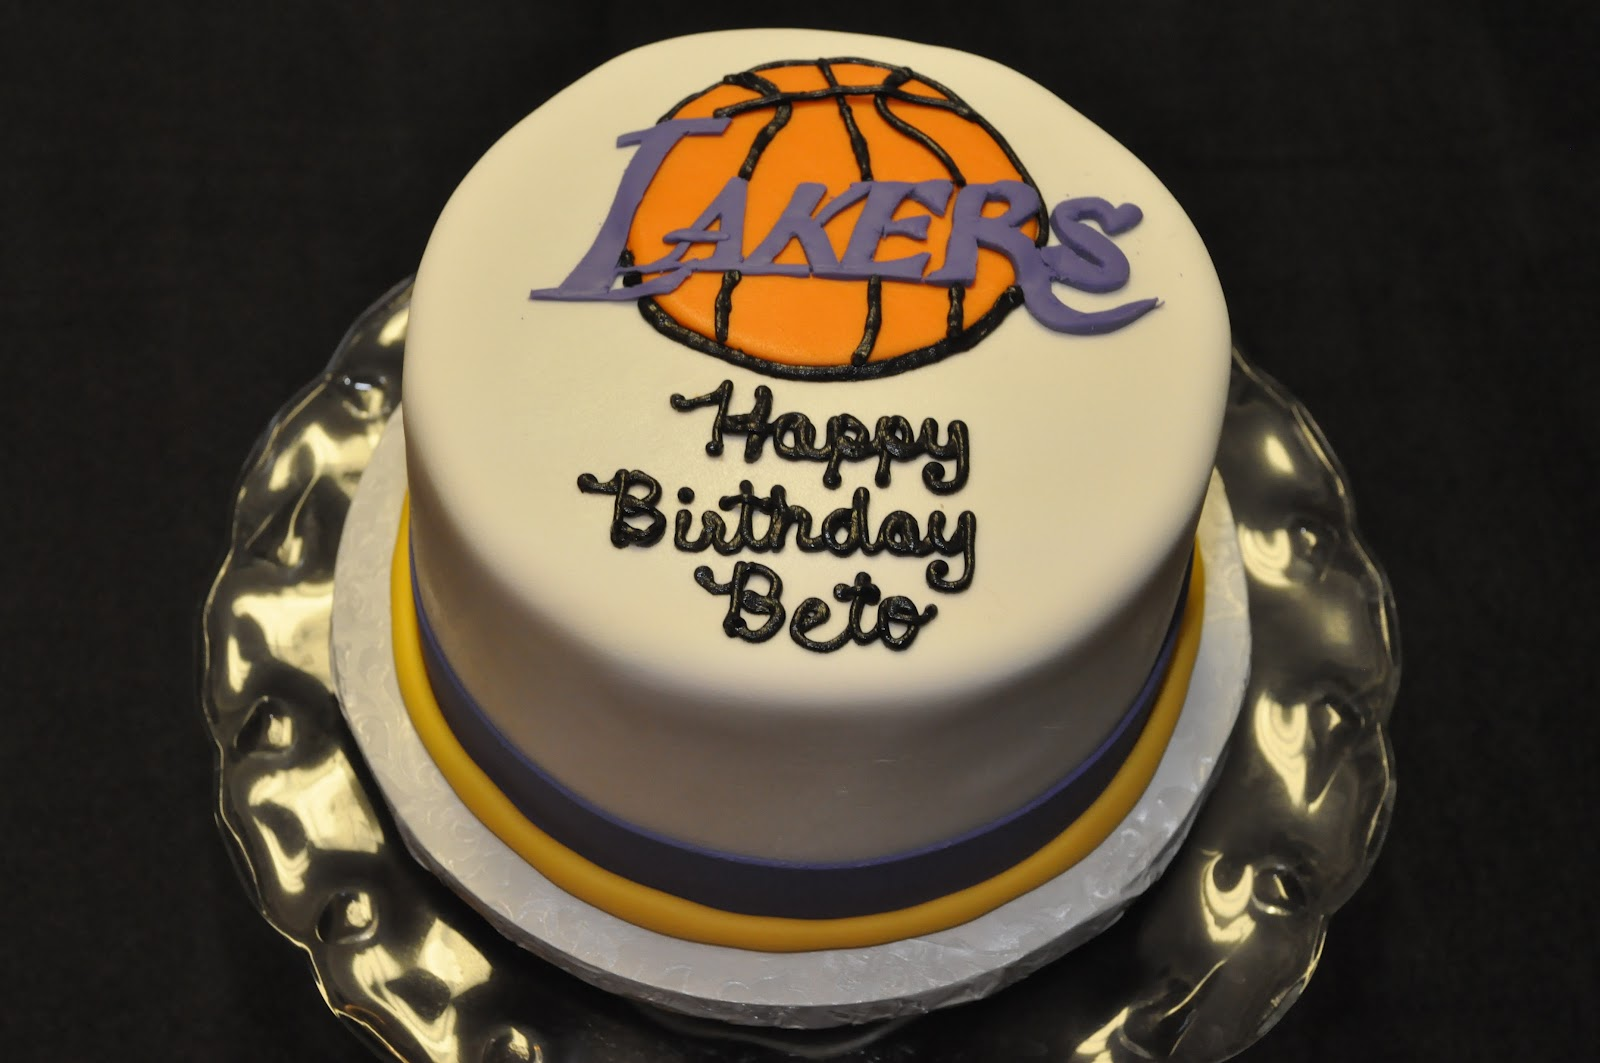 Bettys Batter Blog Guitar And Lakers Cakes